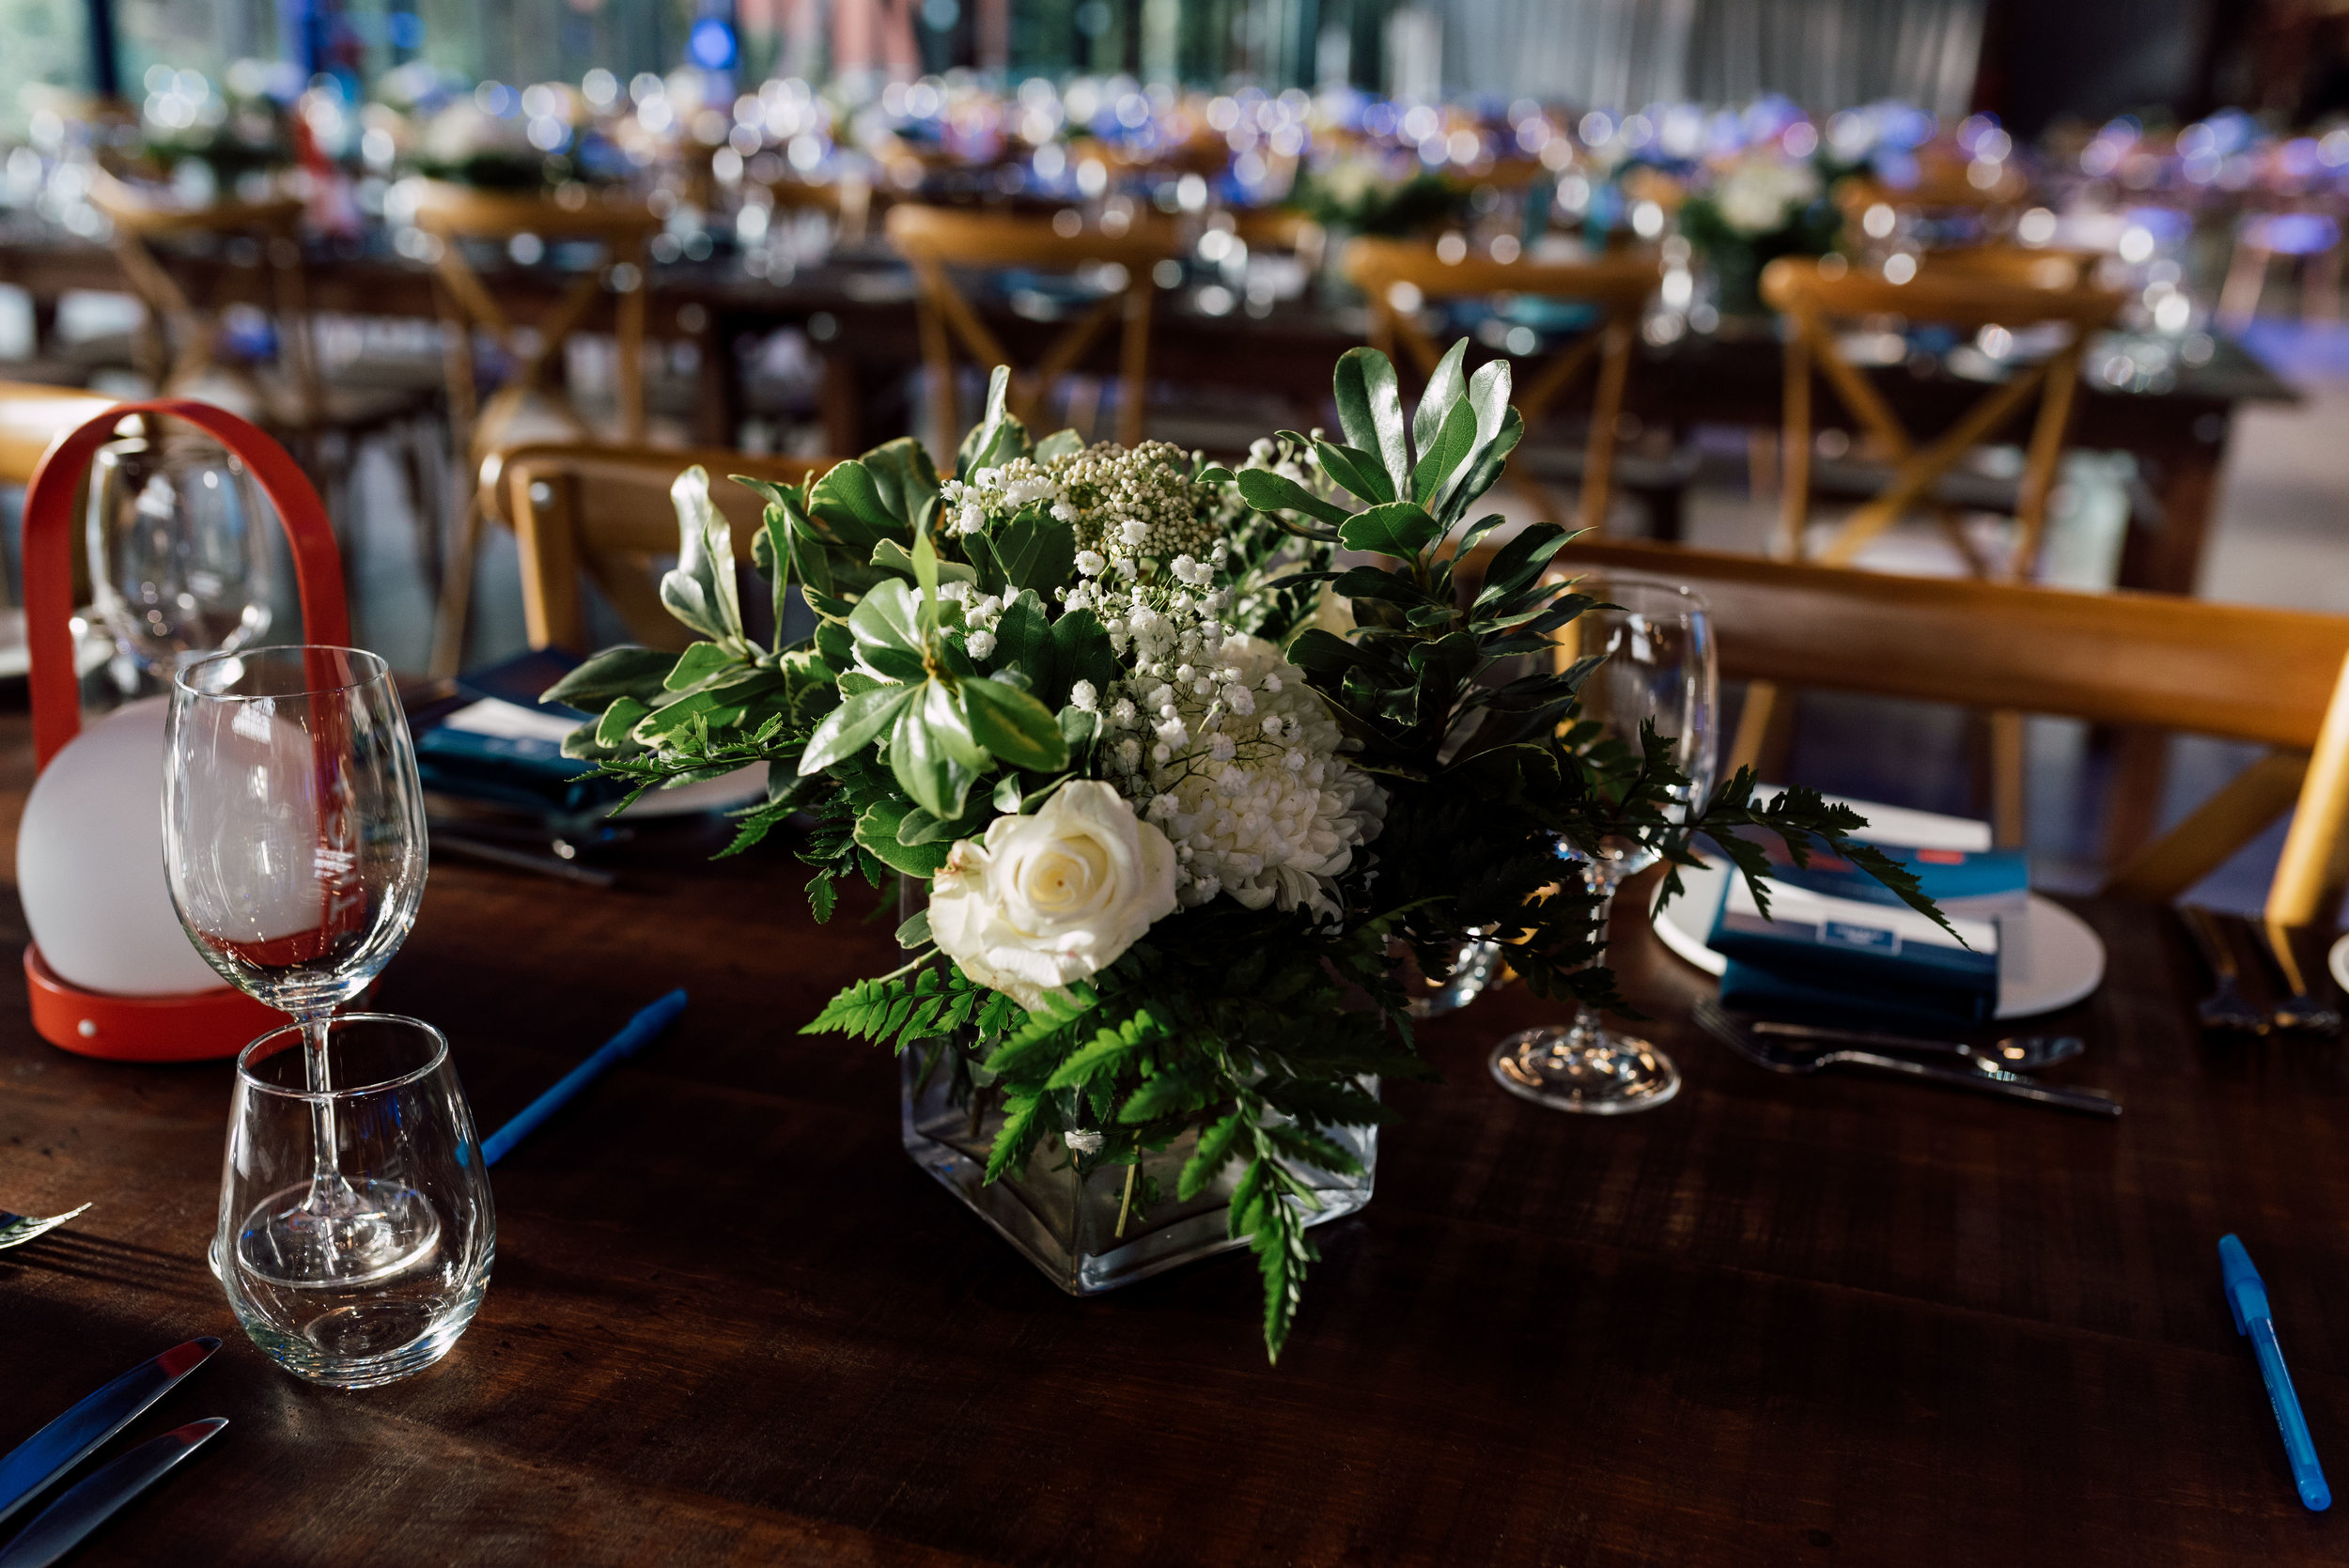 Bouquet on table at Evergreen Brick Works wedding